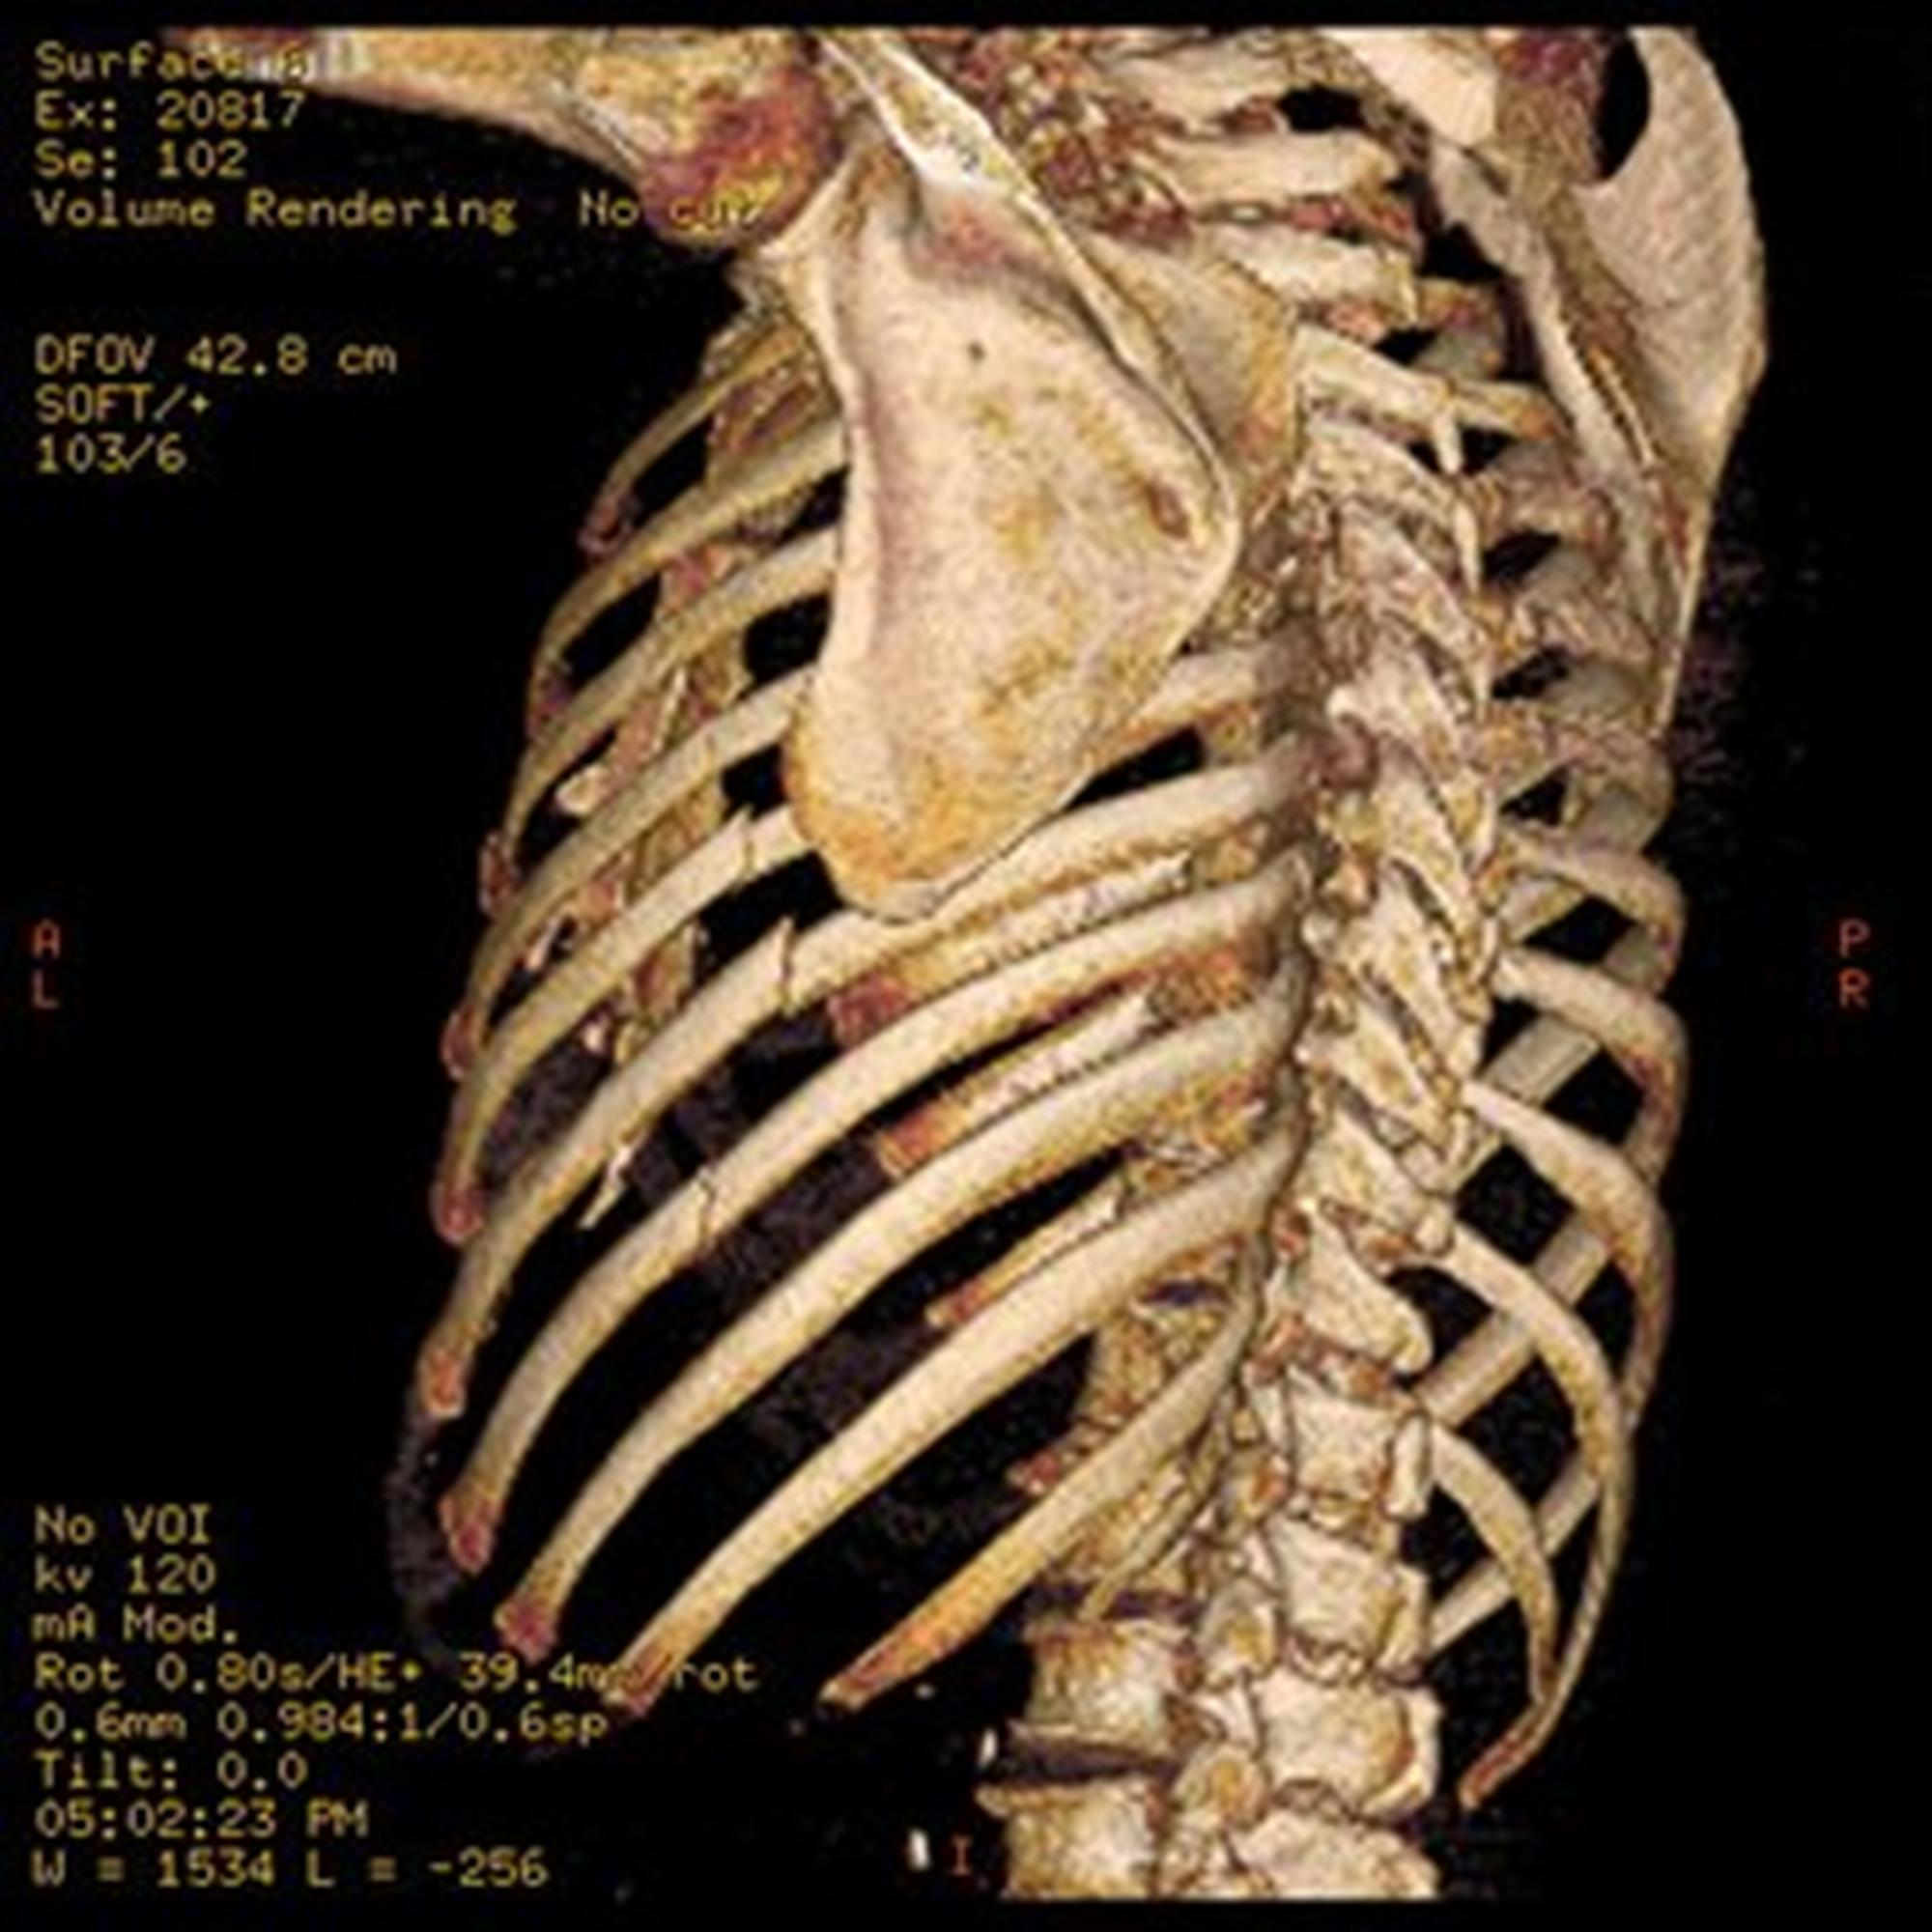 http://upload.orthobullets.com/topic/1060/images/3-d-reconstruction-of-fractured-ribs-before-surgery_1.jpg